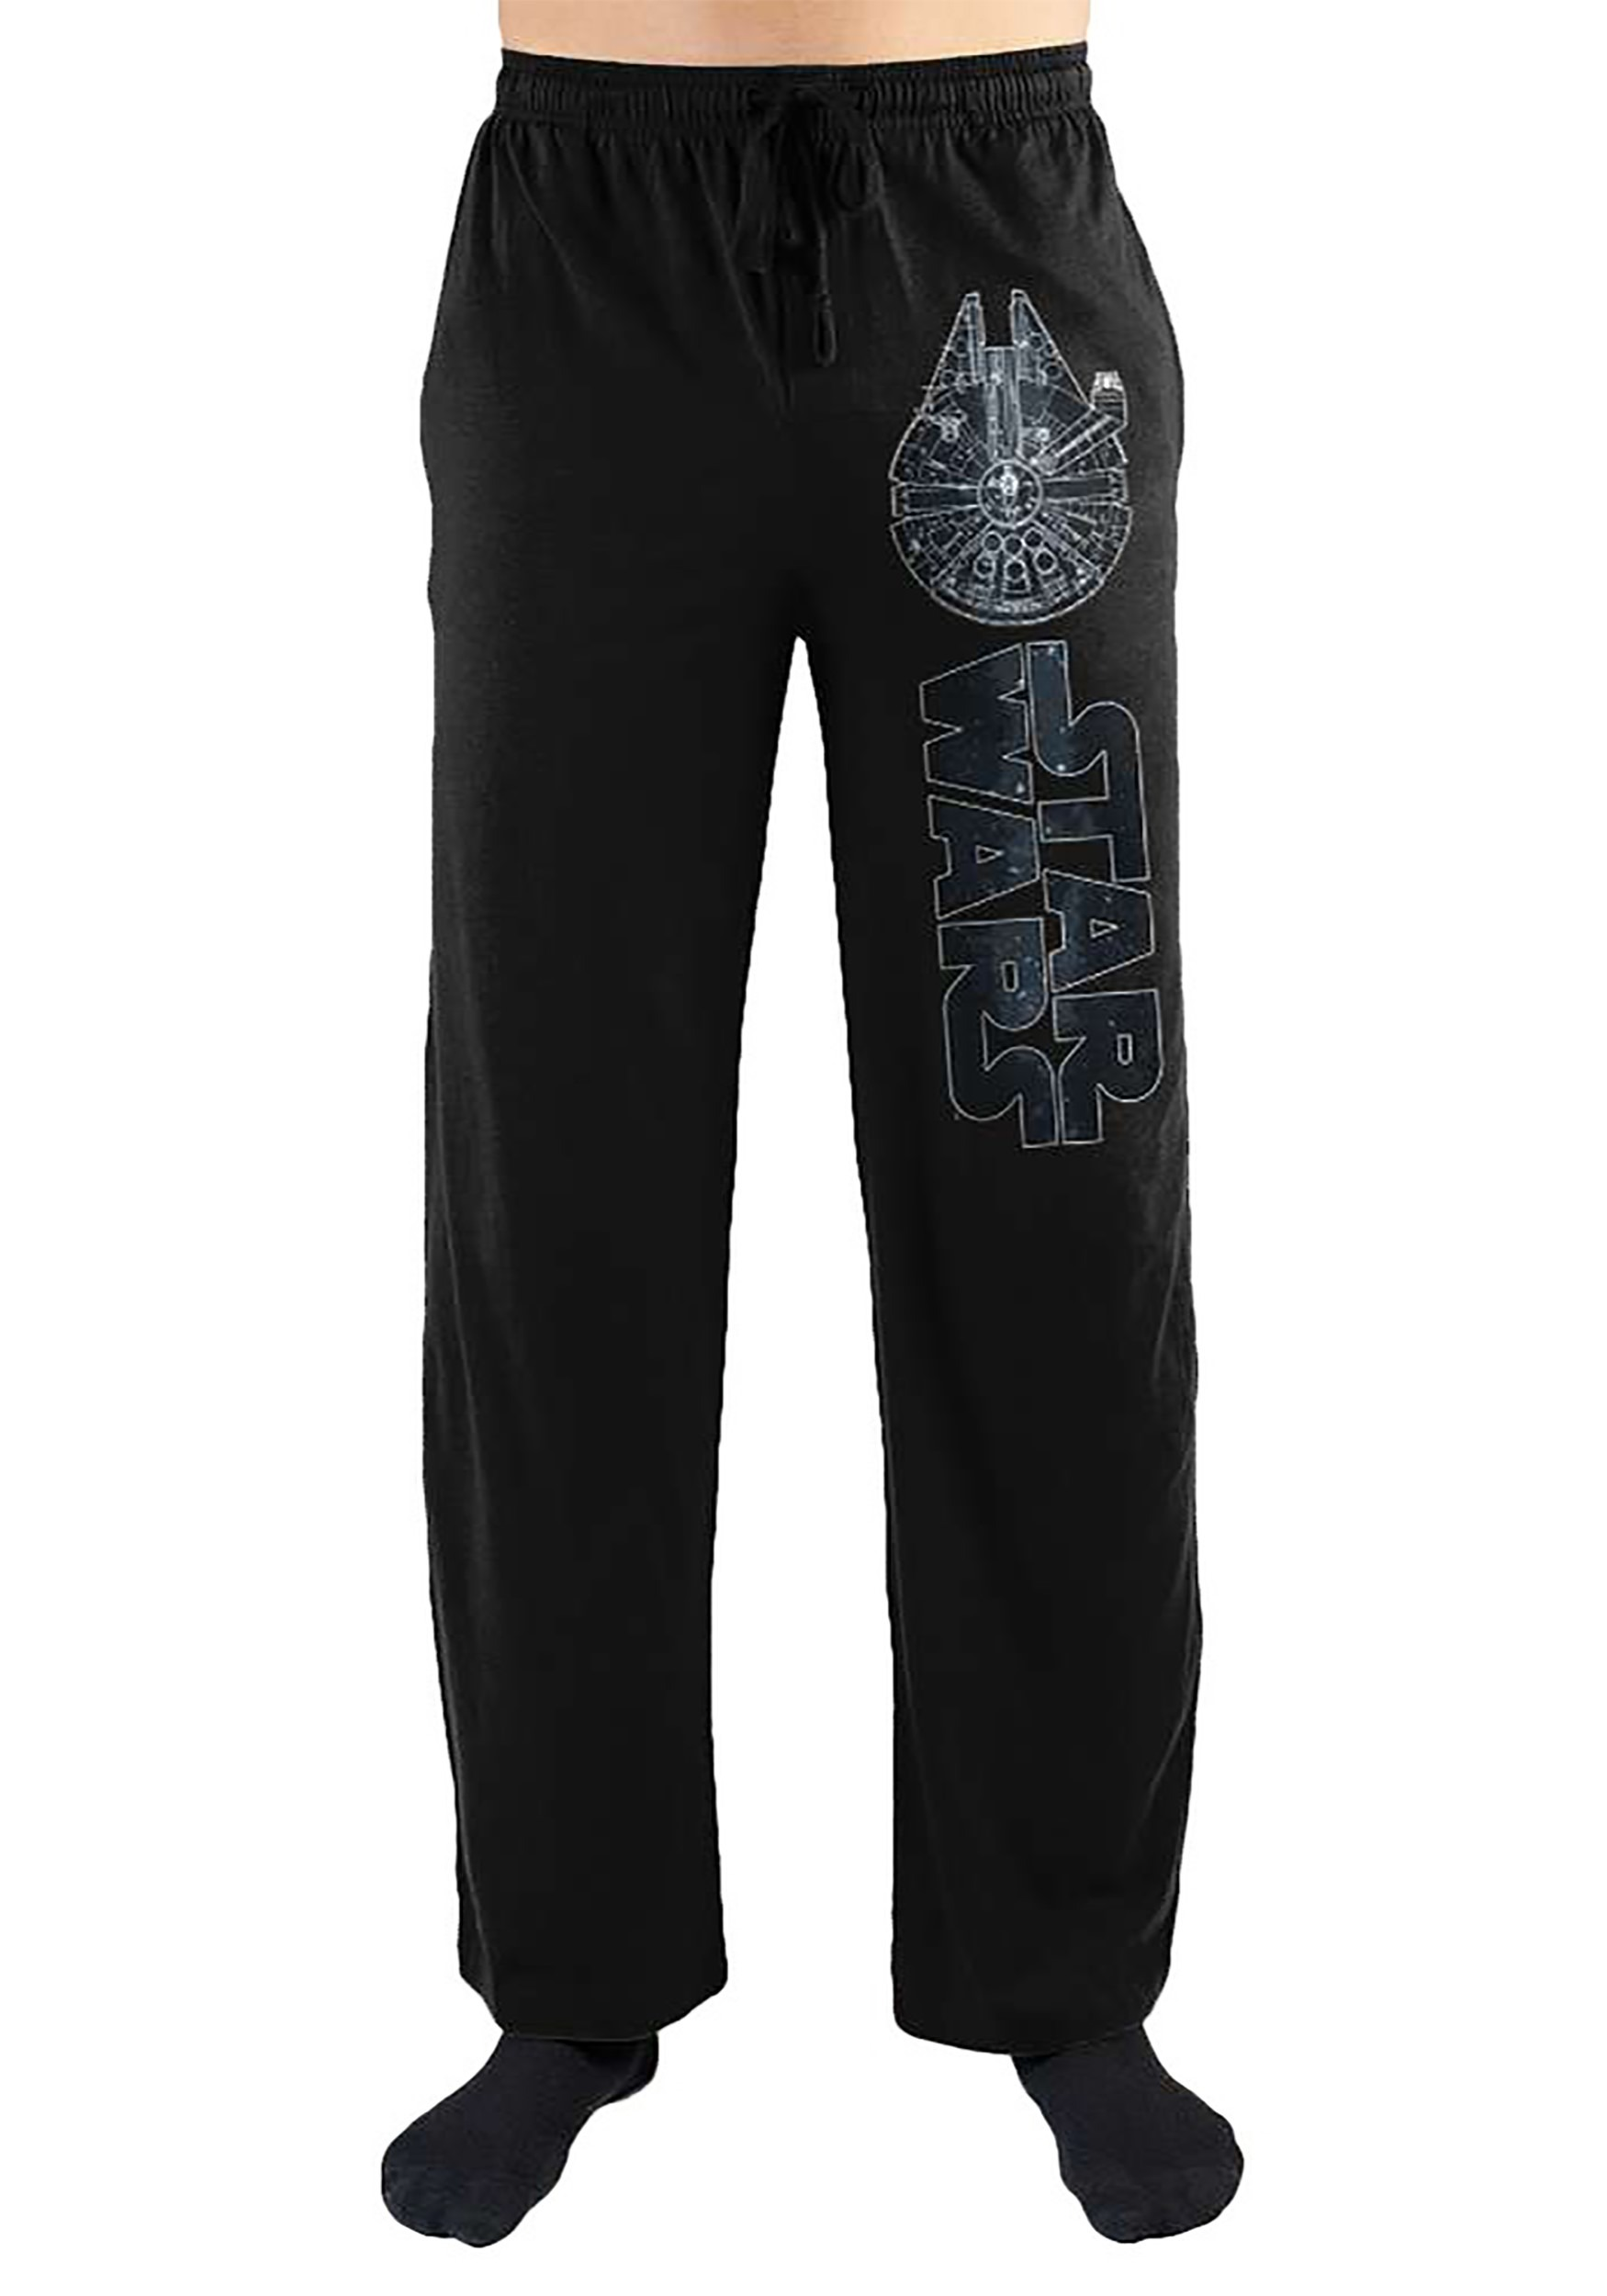 Star Wars Millennium Falcon Adult Sleep Pants